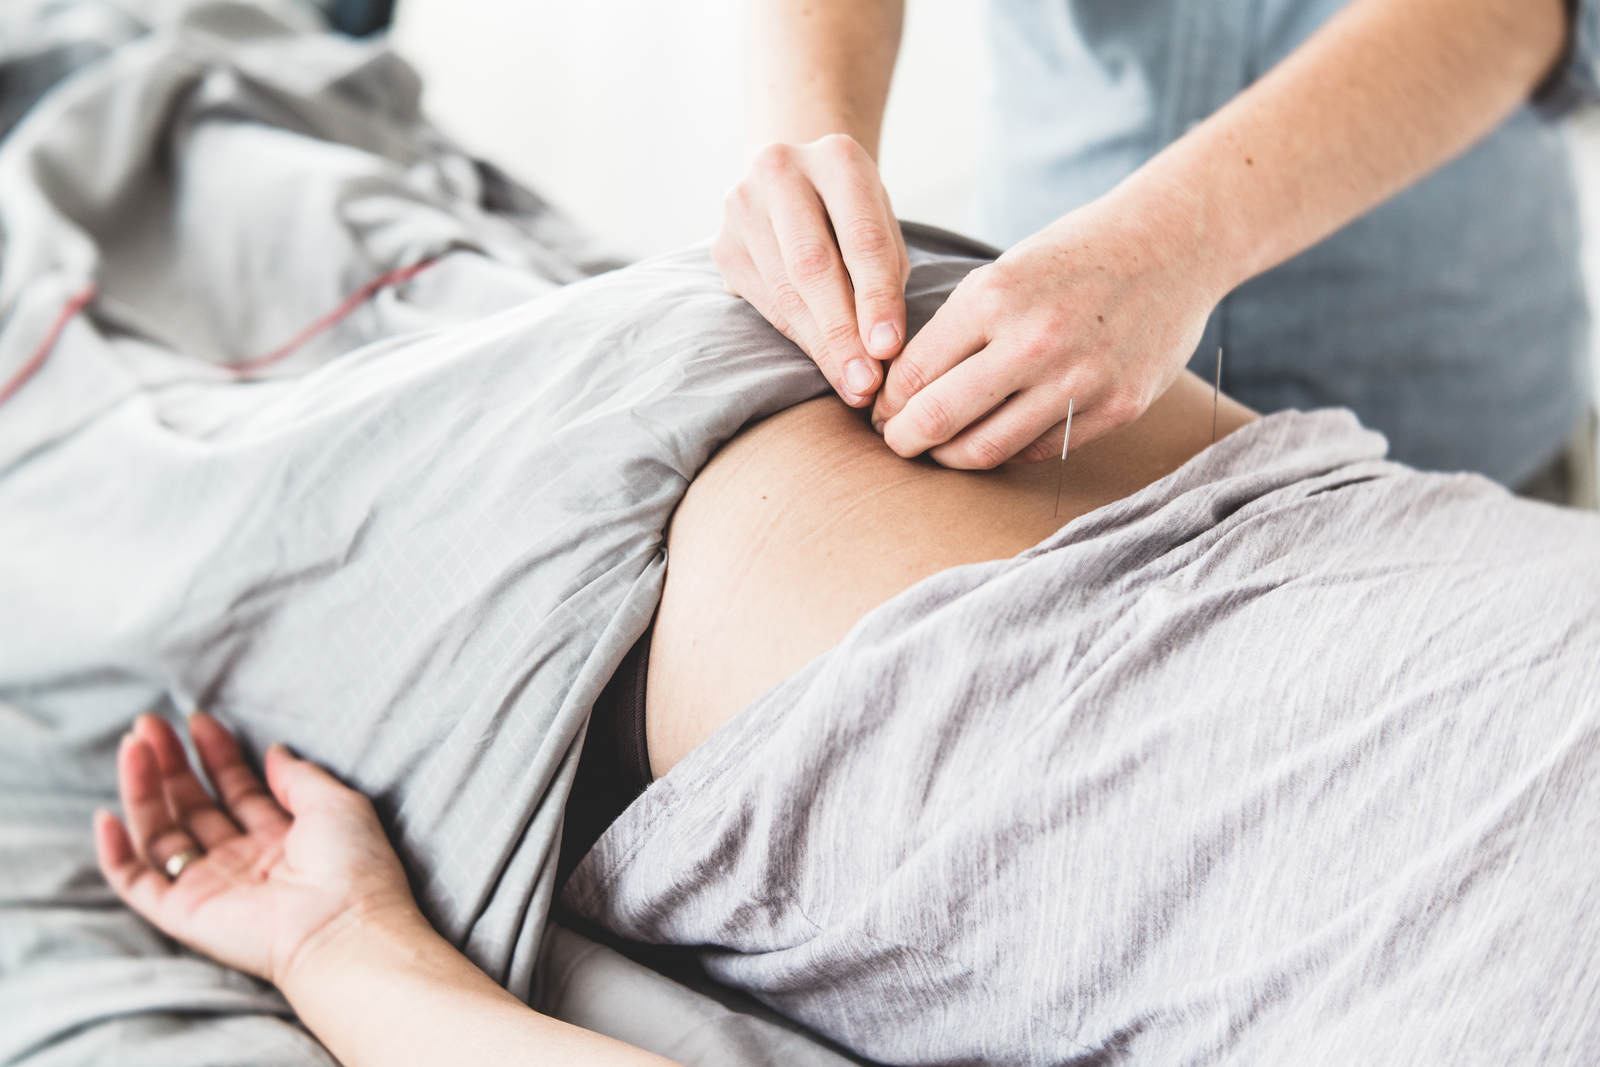 Low back pain and acupuncture